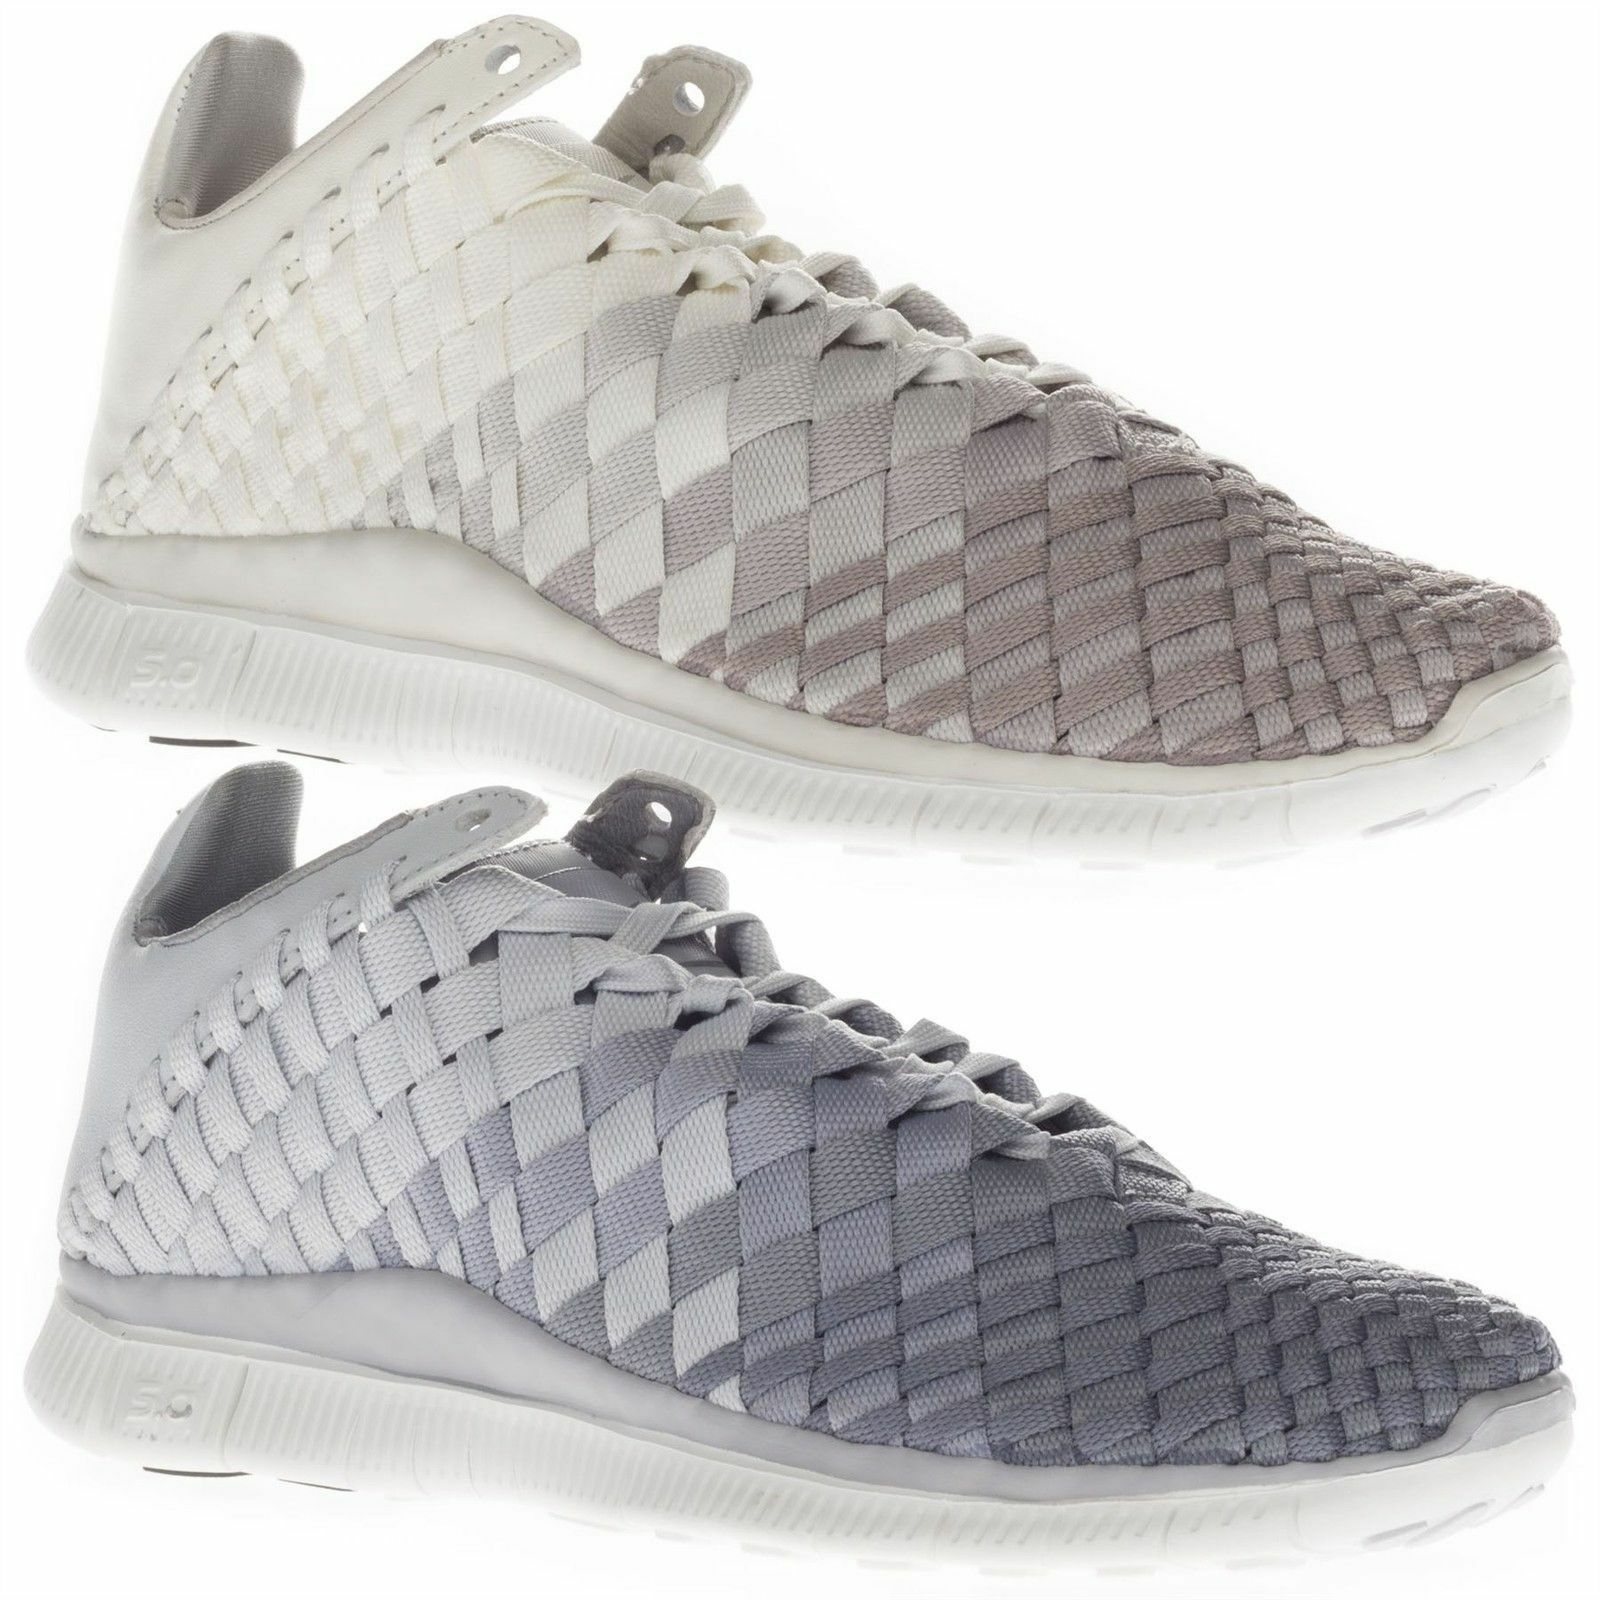 Nike Women's Free White Inneva Woven Low Top Running Sports White Free Beige Trainers 6708fa